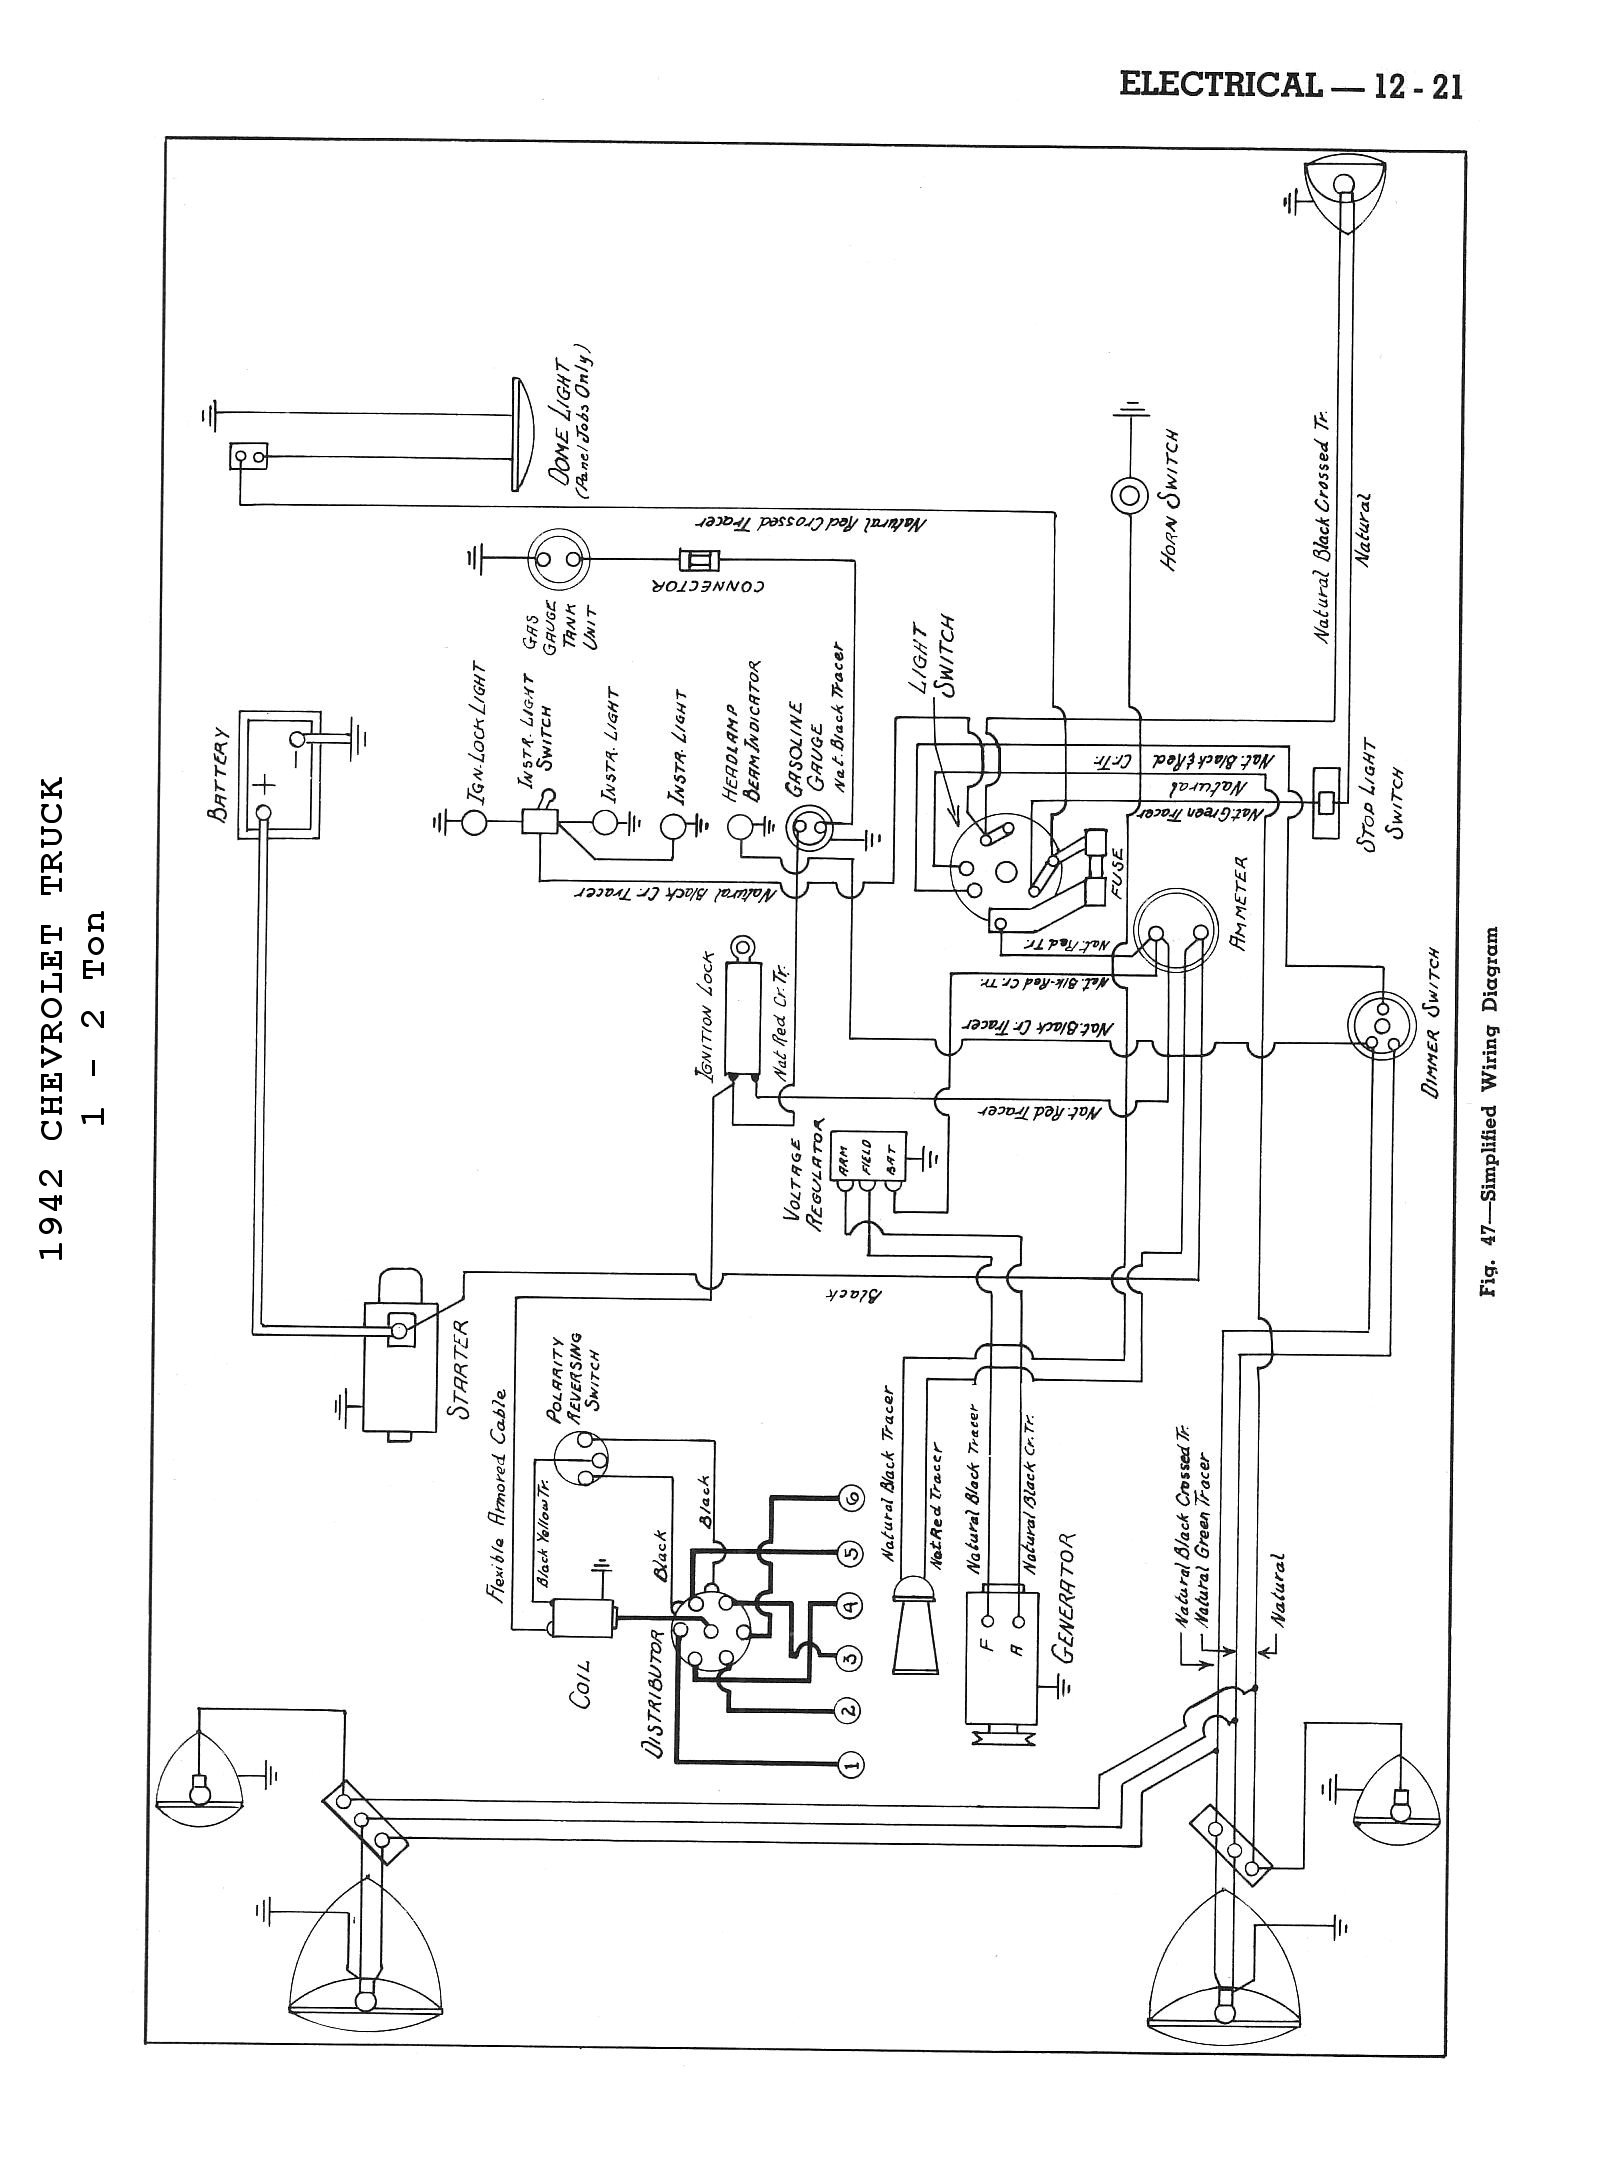 Turn Signal Wiring Diagram 1950 Merc Schematic Library1938 Chevy Third Level